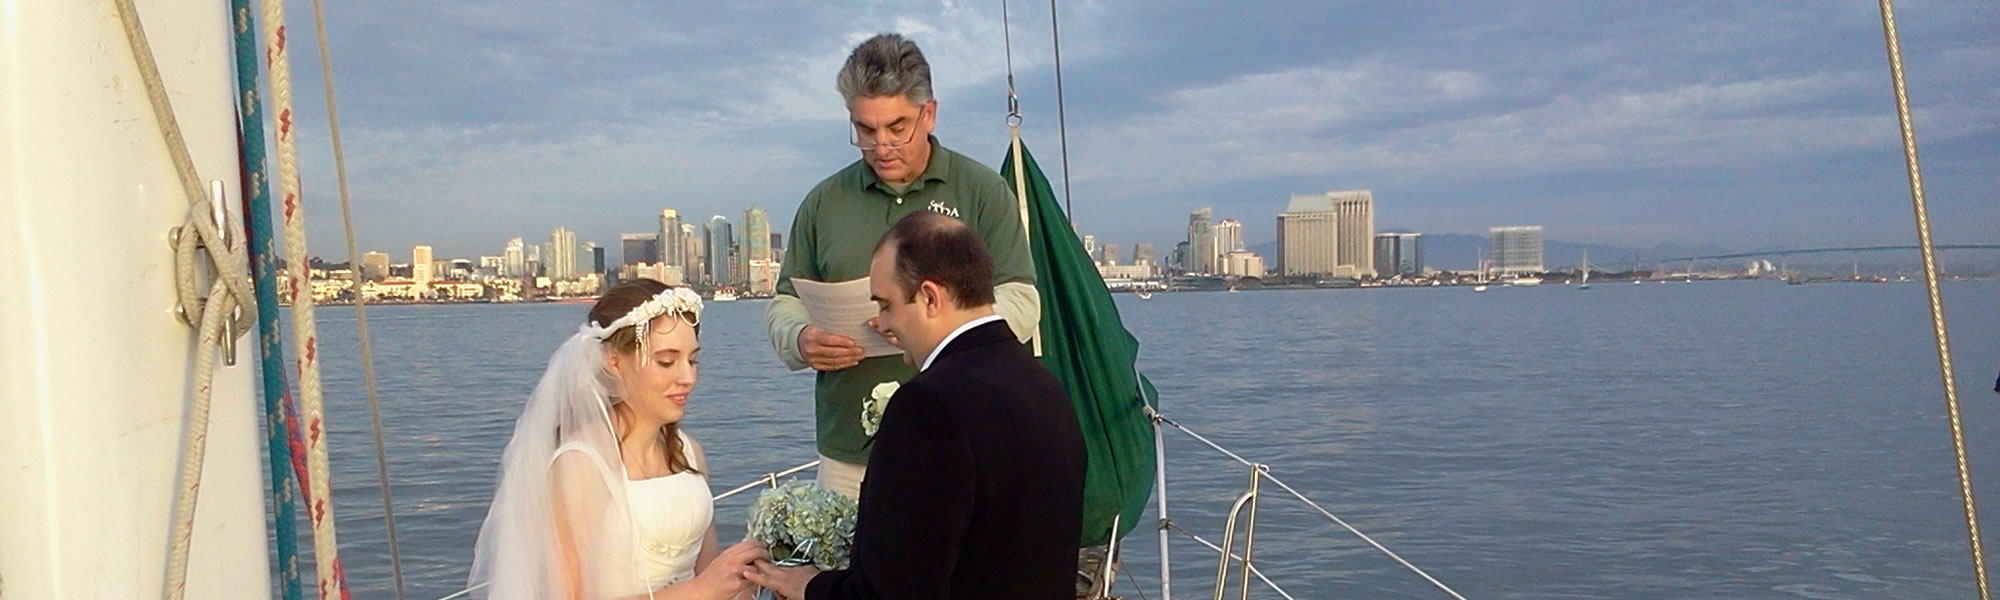 weddings at sea in san diego aboard JADA - classic wooden sailboat